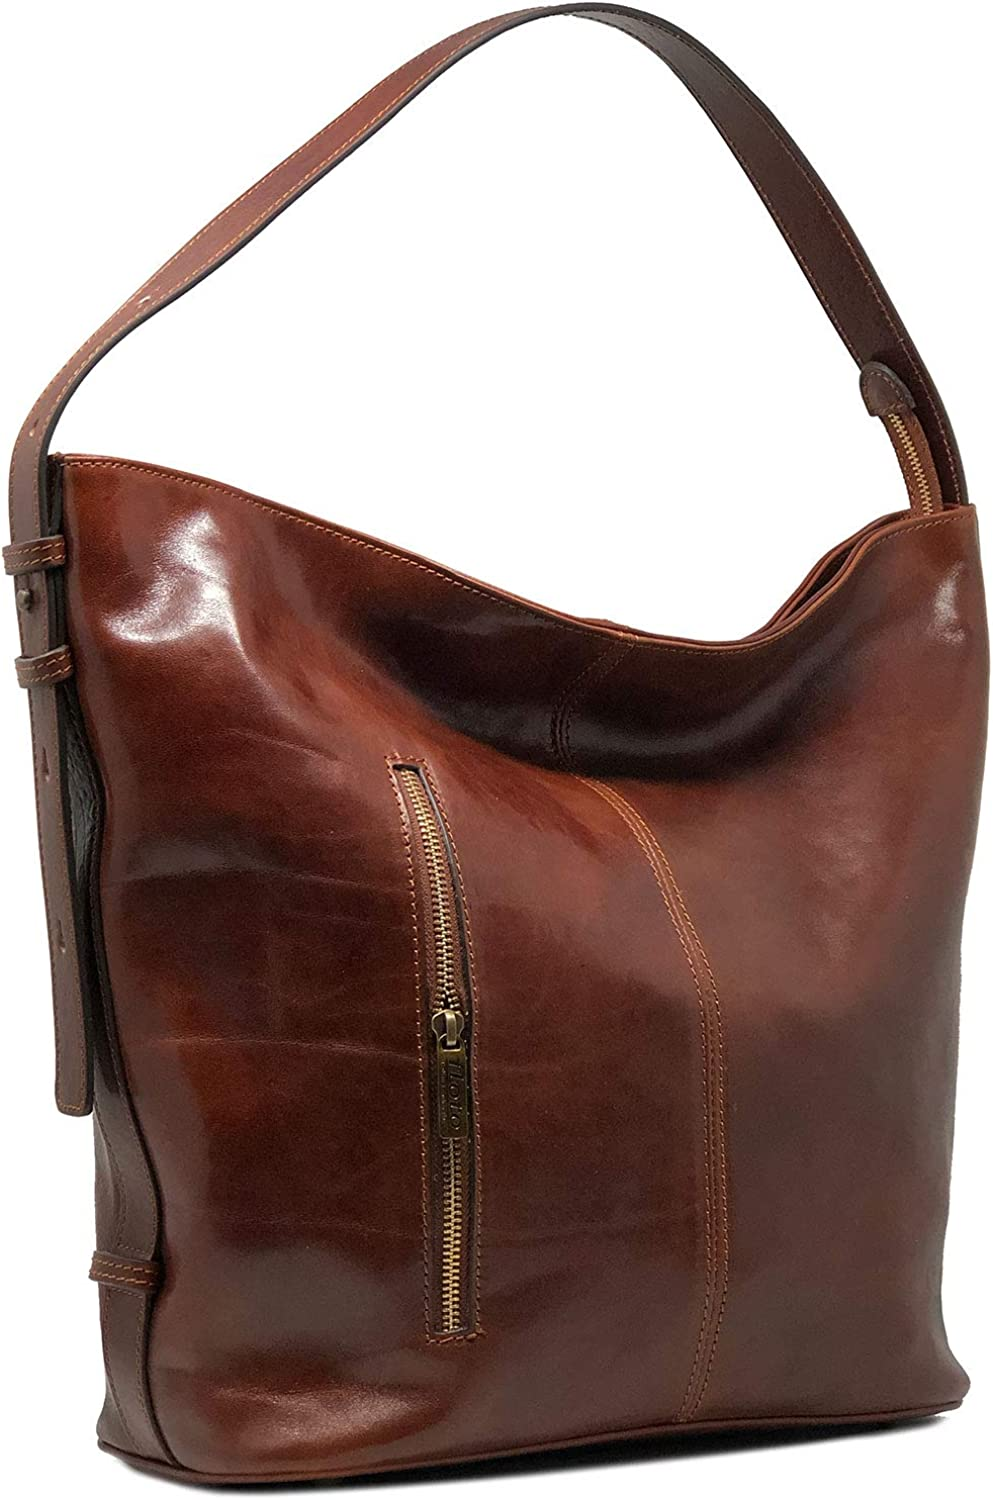 Floto Sardinia Leather Tote Bag Our shop most popular Convertible Crossbody Women's Ba Max 81% OFF